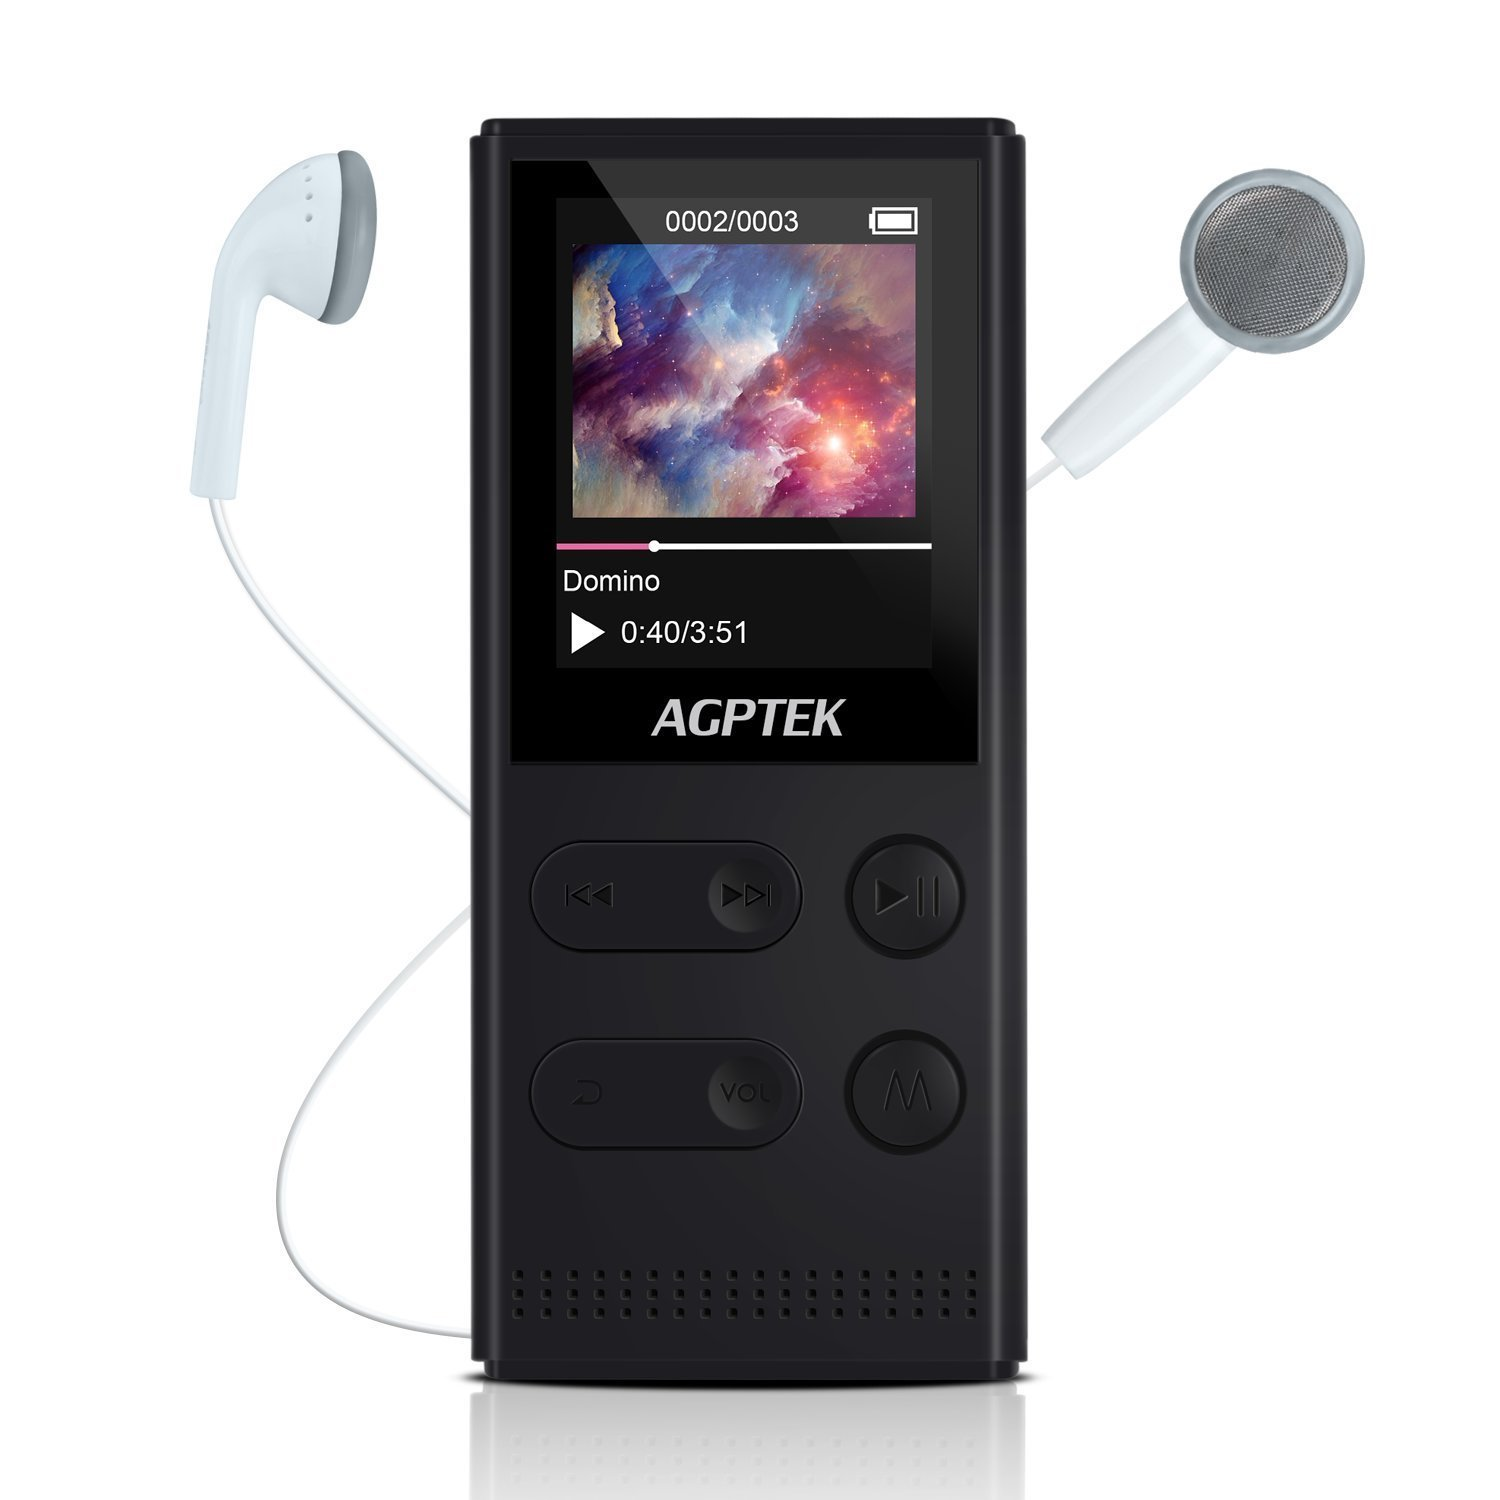 AGPTEK A22 8GB Solar Power Mp3 Player with FM Radio/Voice Recorder, 60 Hours Playback and Expandable Up to 128GB, Lossless Music Player with 1.8-inch TFT Display, Black